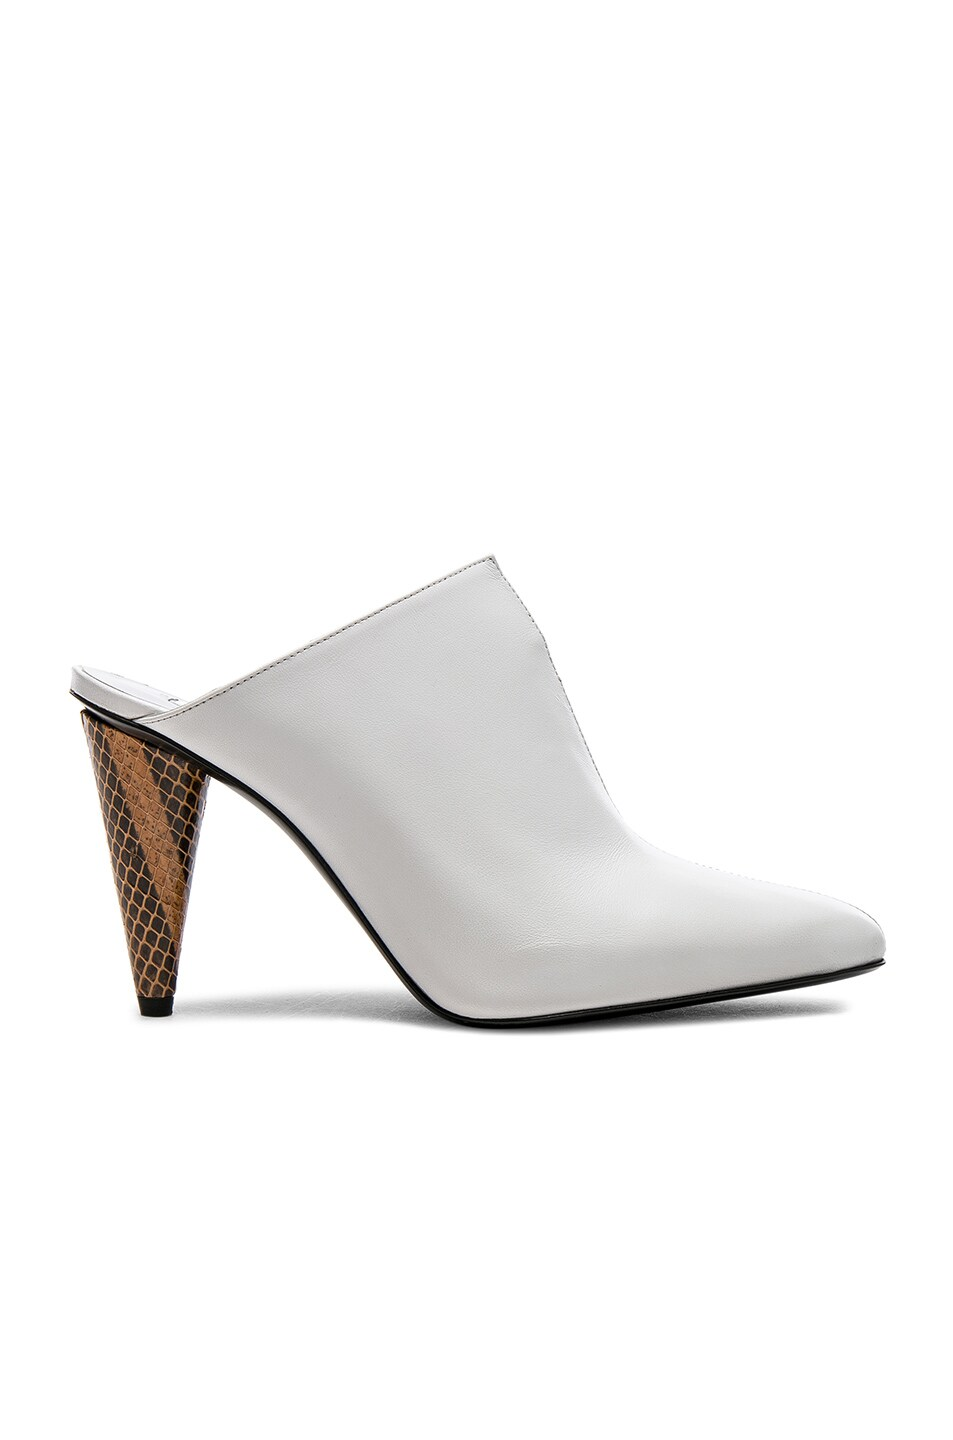 Image 1 of Acne Studios Leather Demy Mules in Multi White